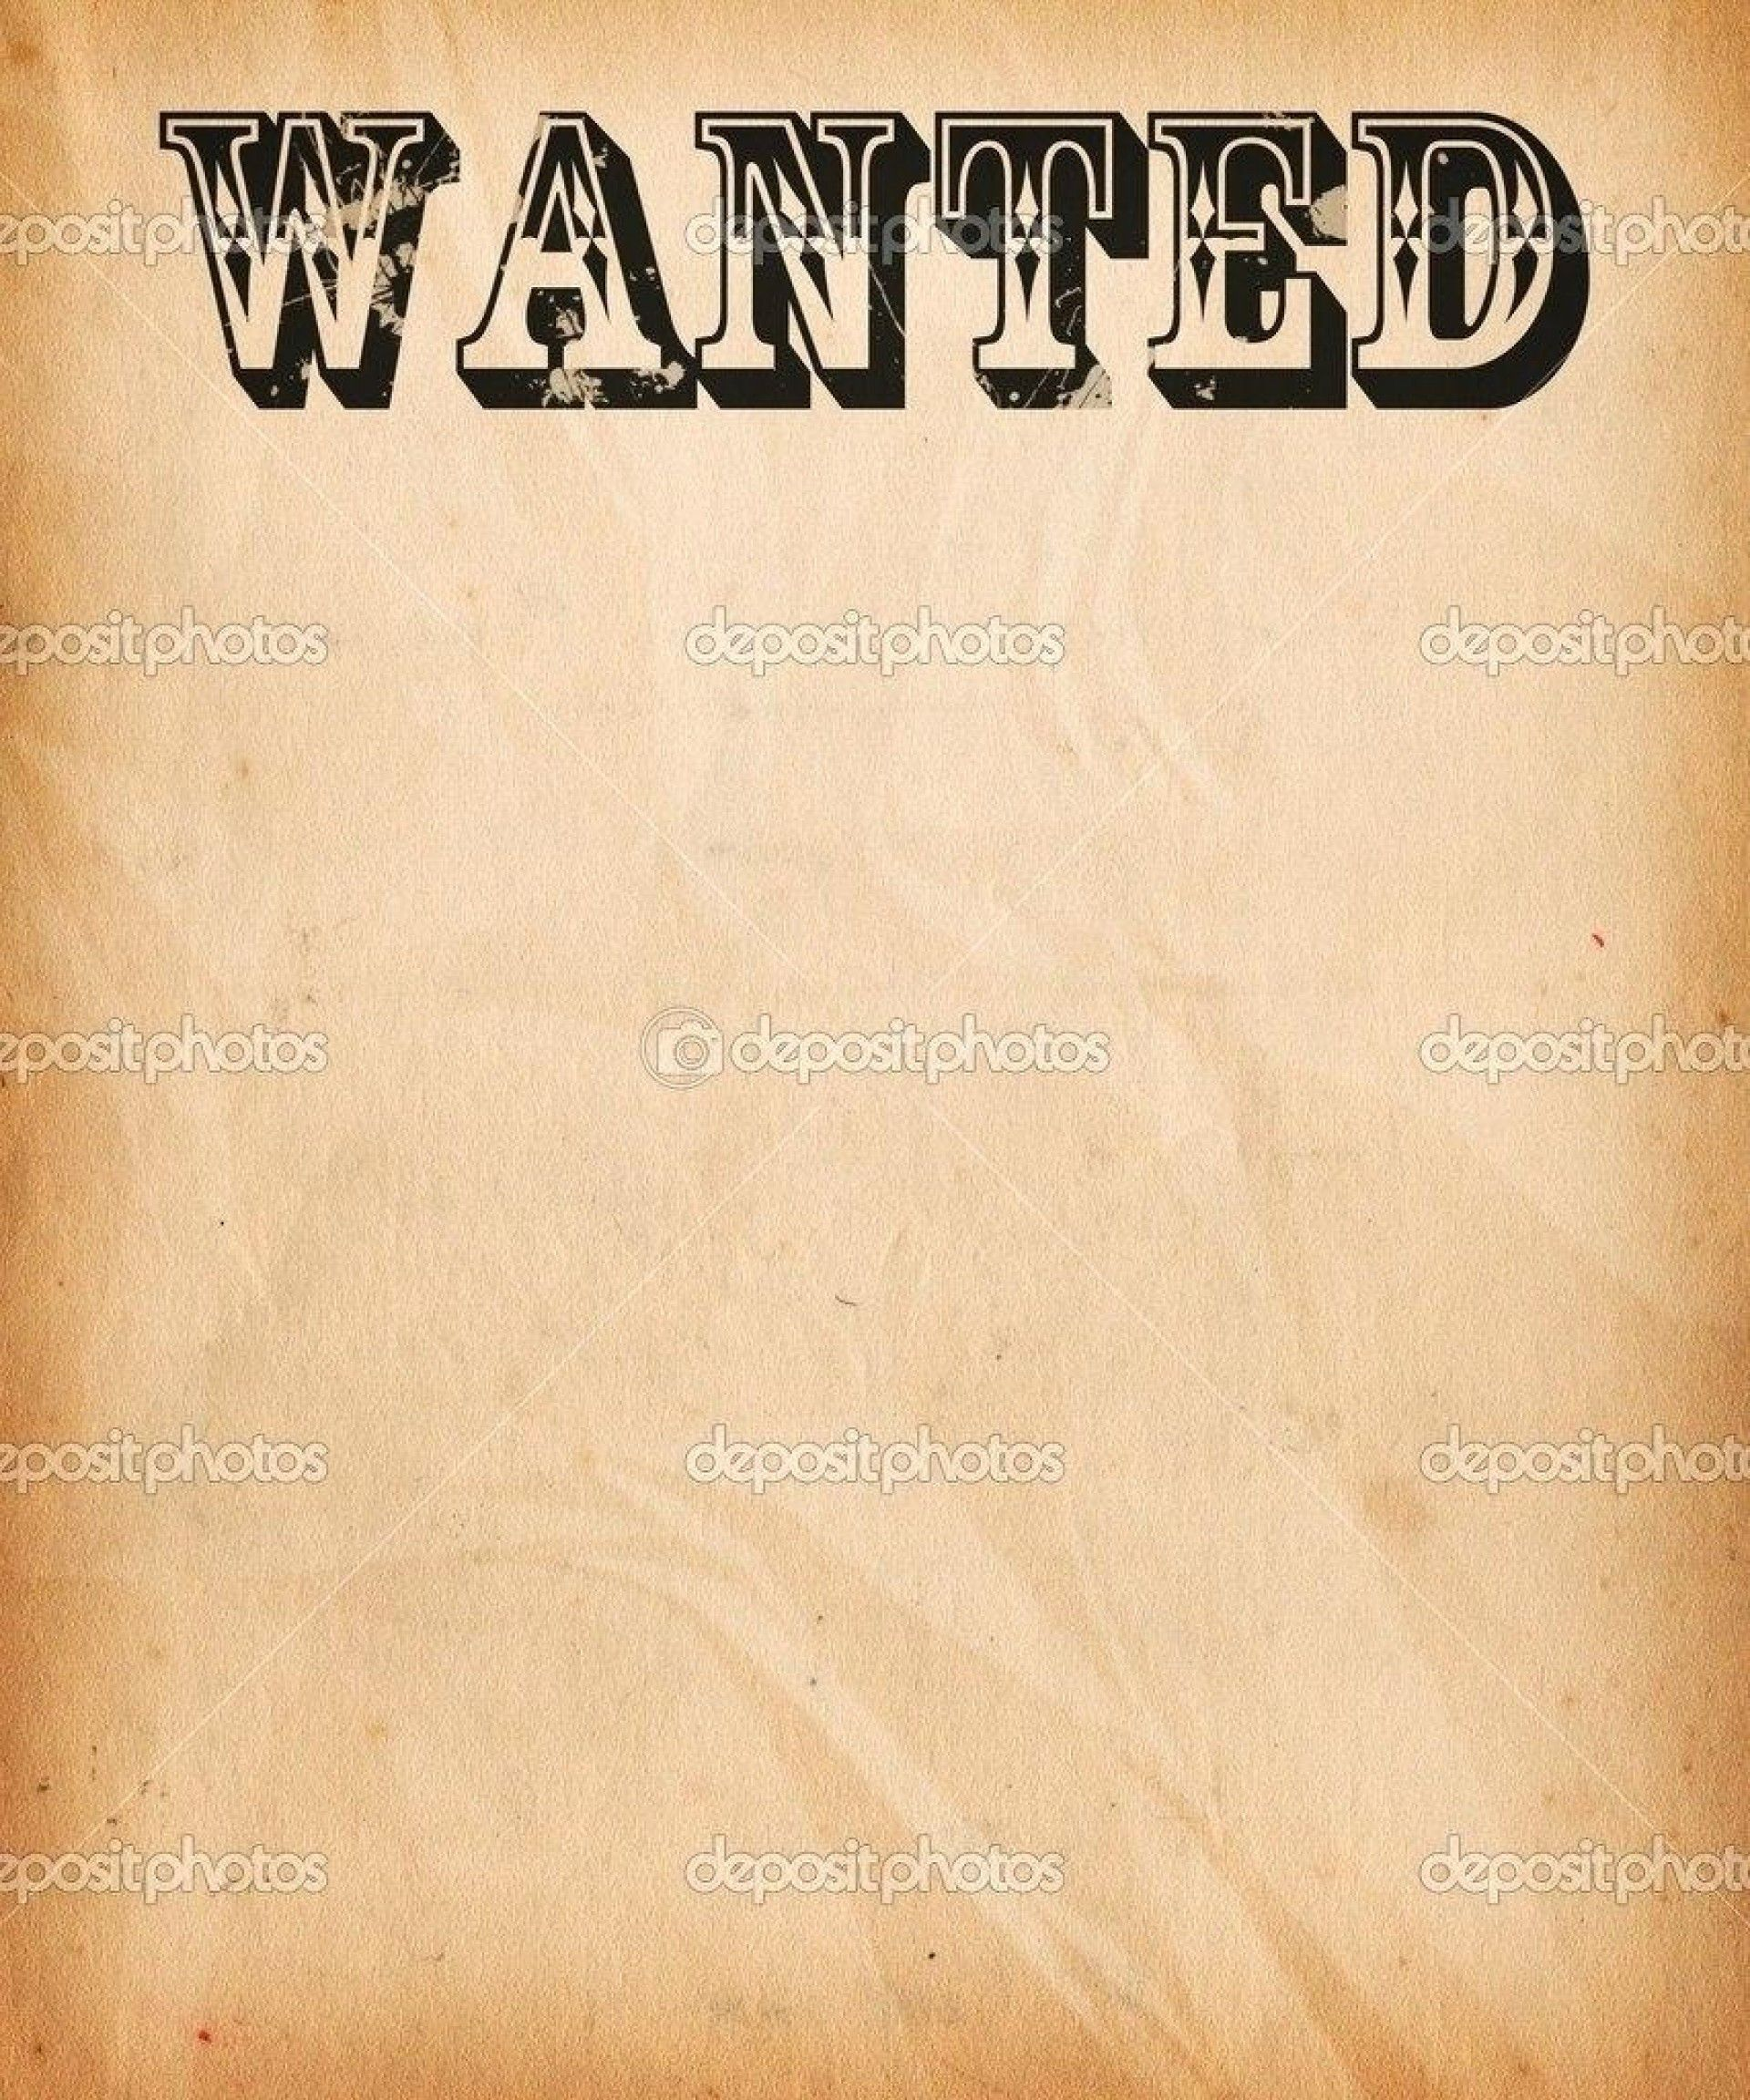 002 Wonderful Wanted Poster Template Free Printable Concept  MostFull